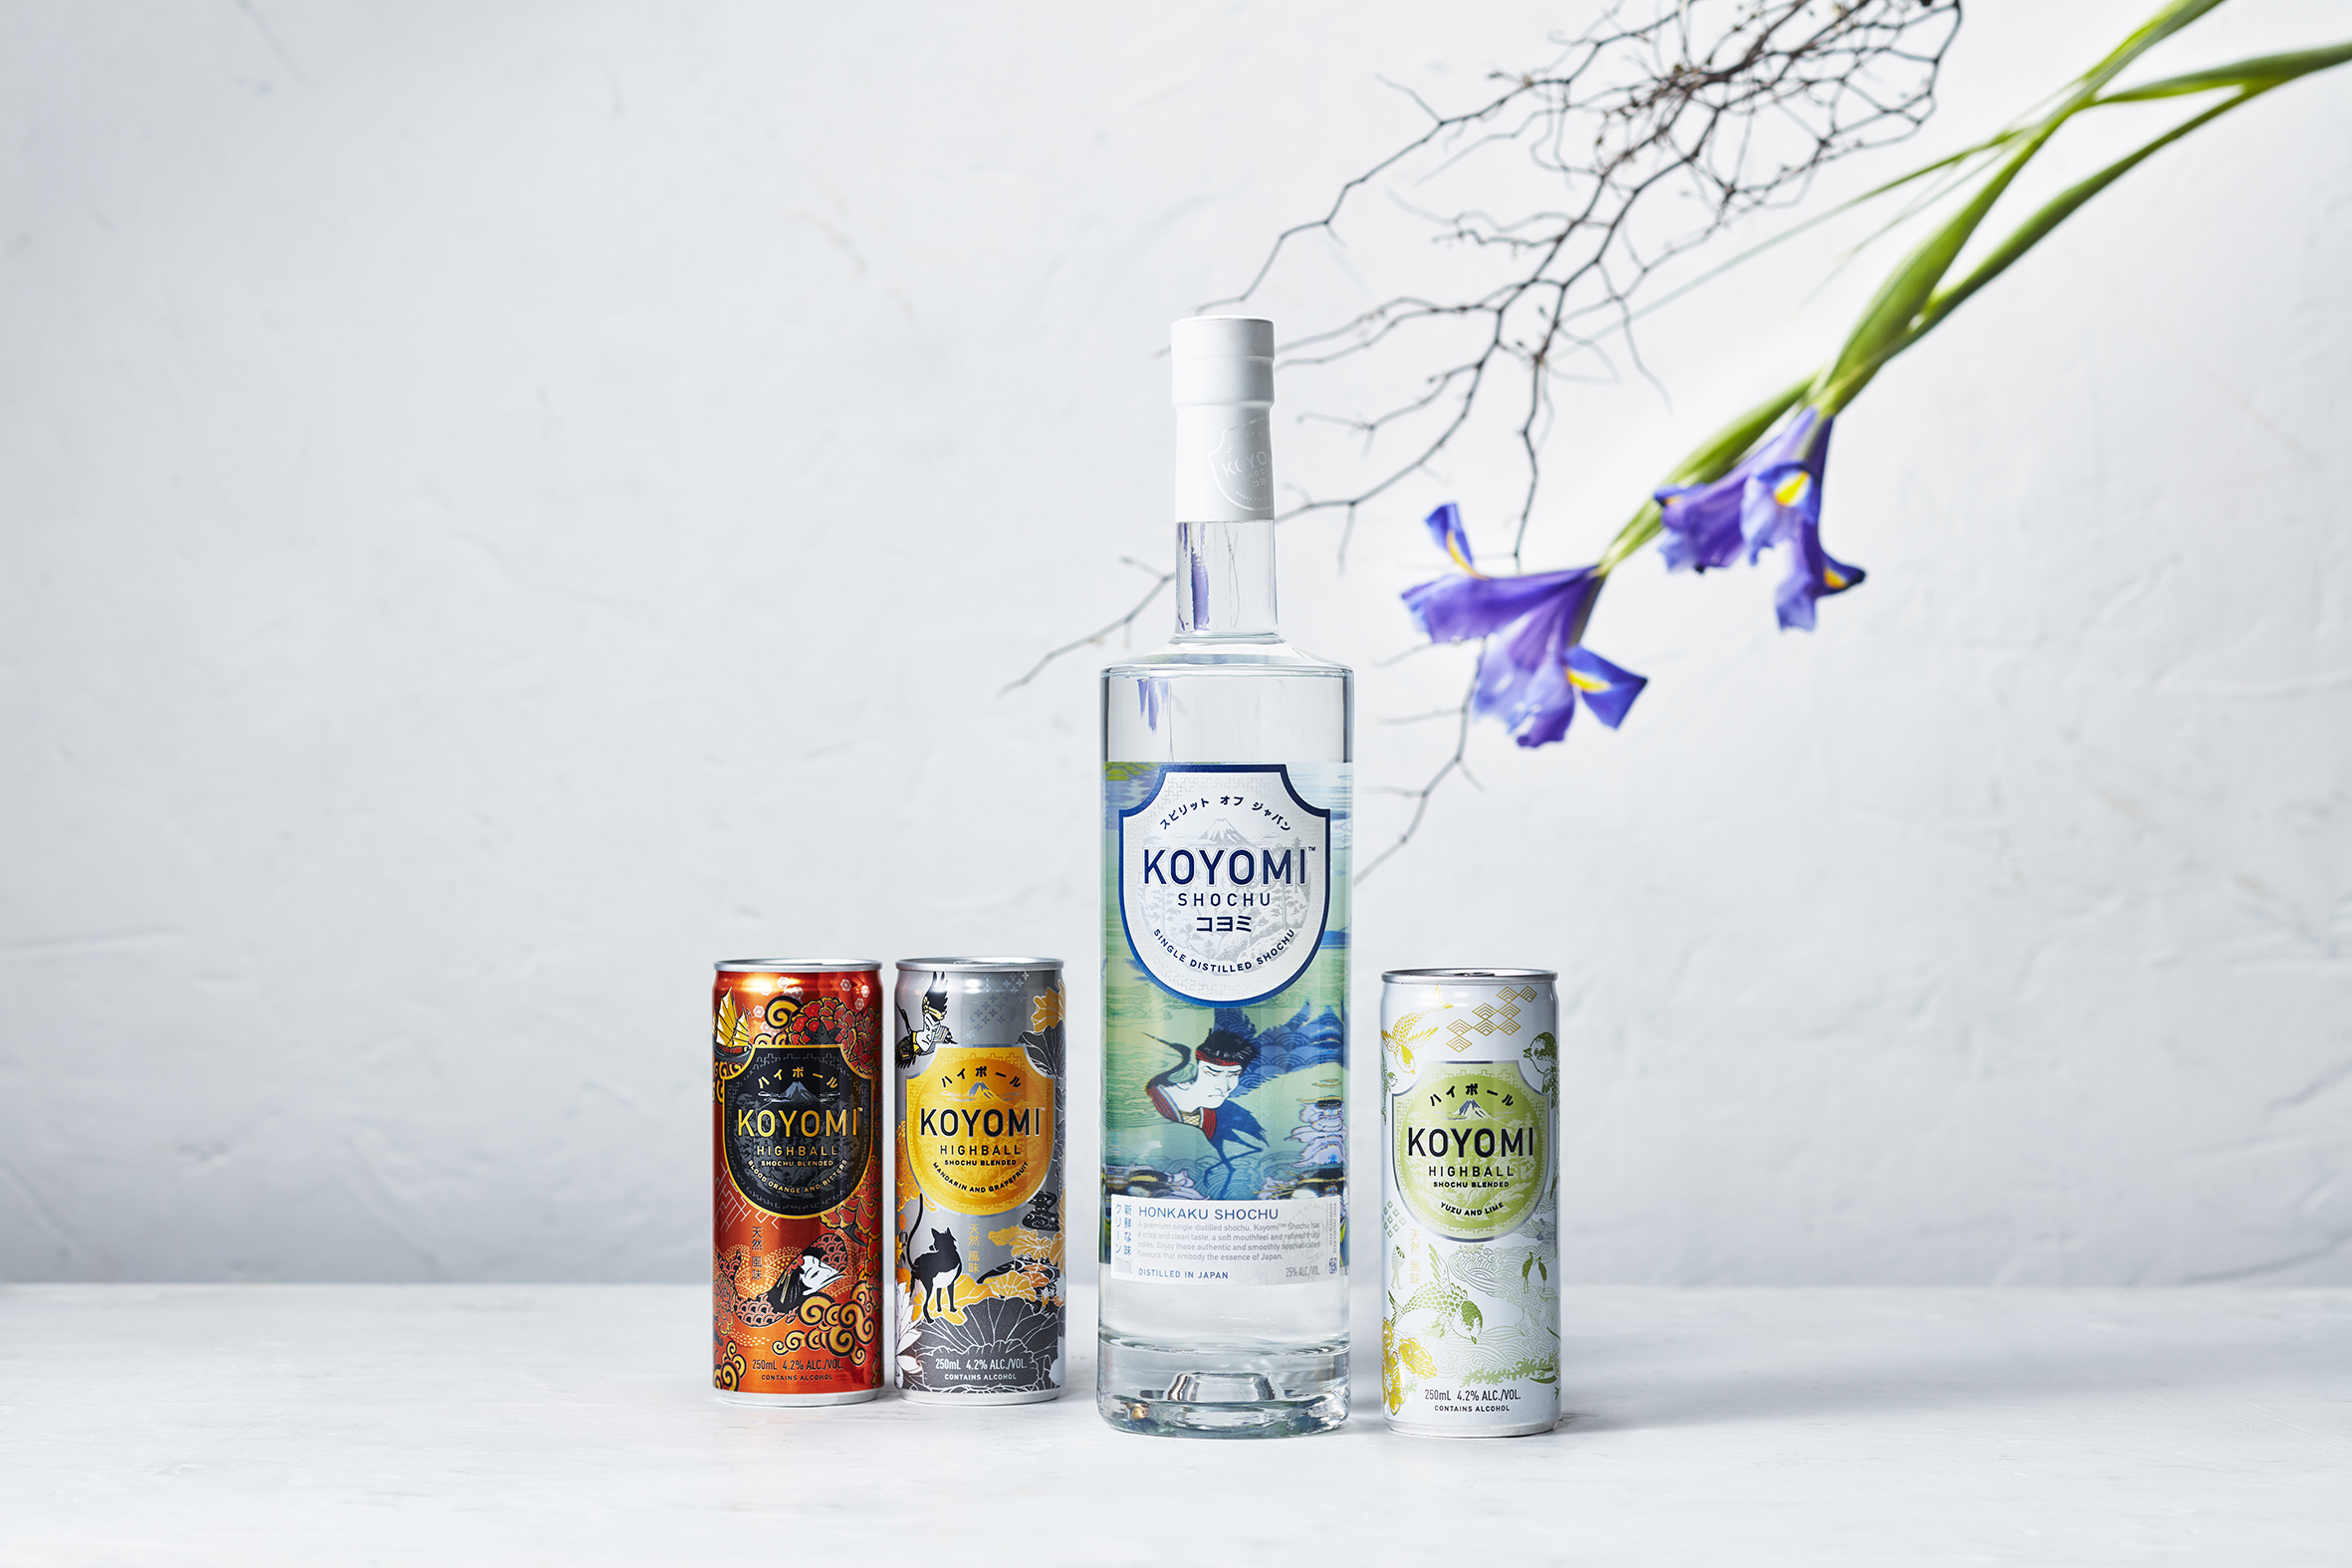 Koyomi Single Distilled Shochu Product Range Created by Boldinc Brand Innovation